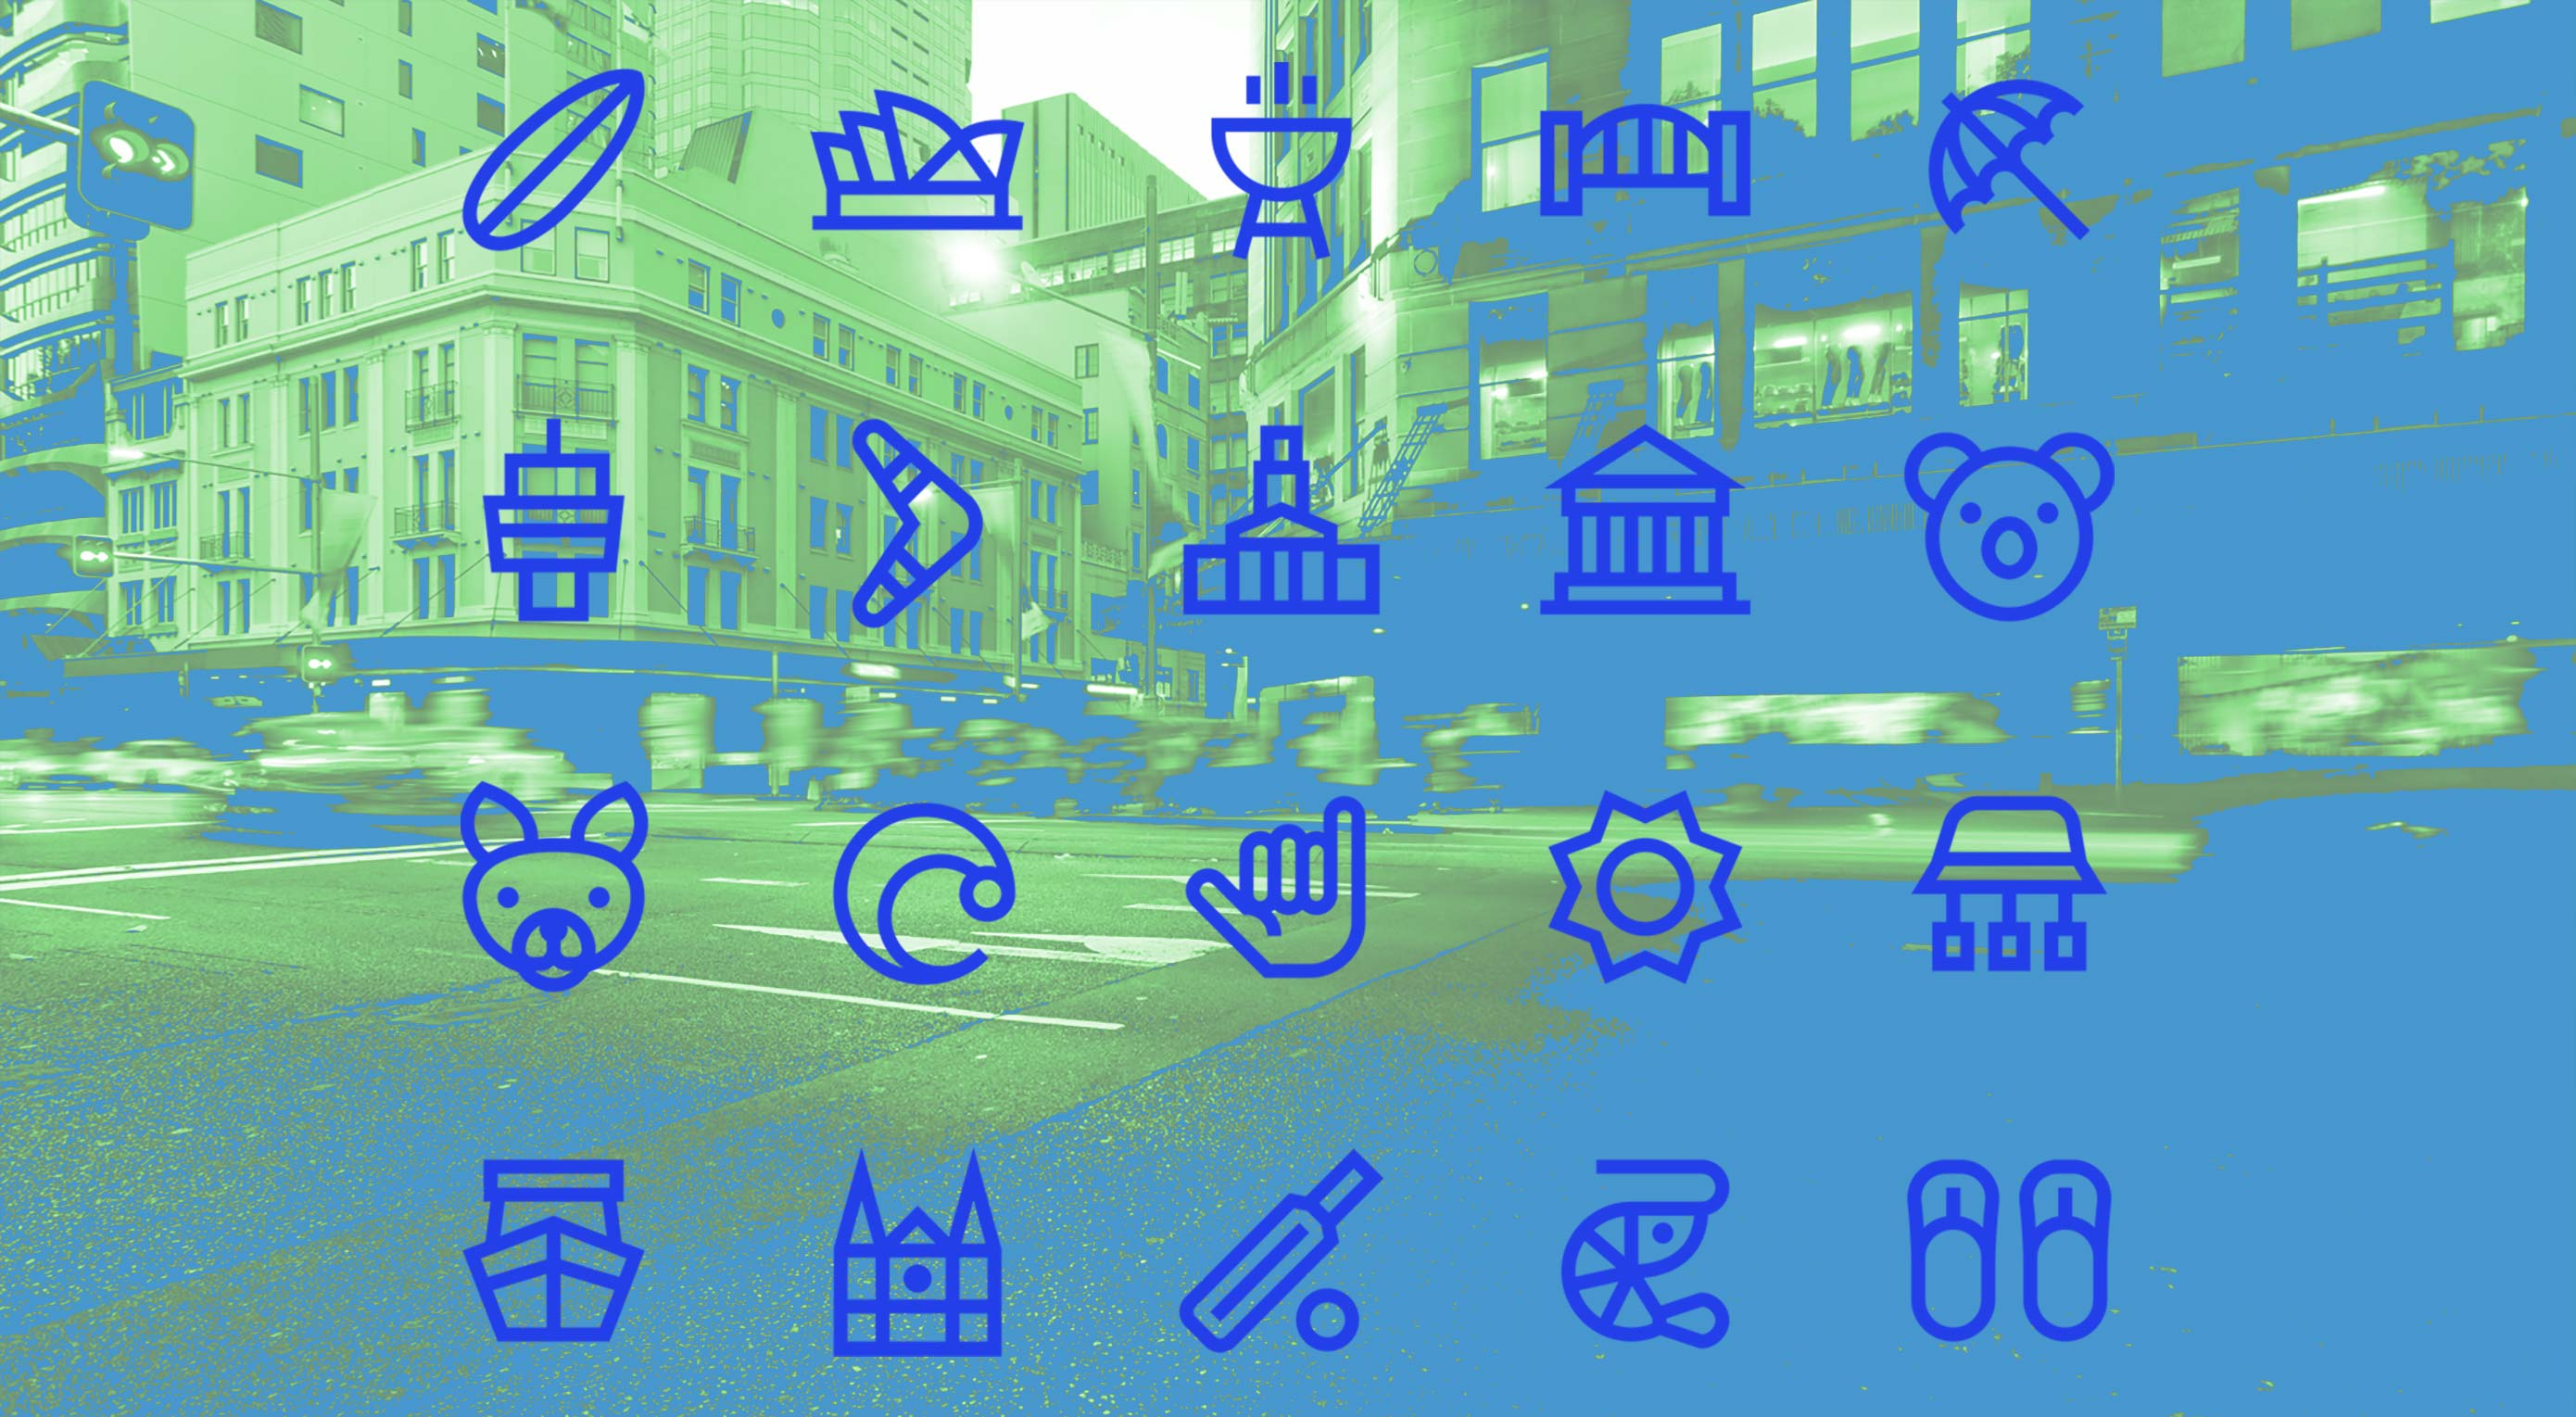 Free download: Citysets icons